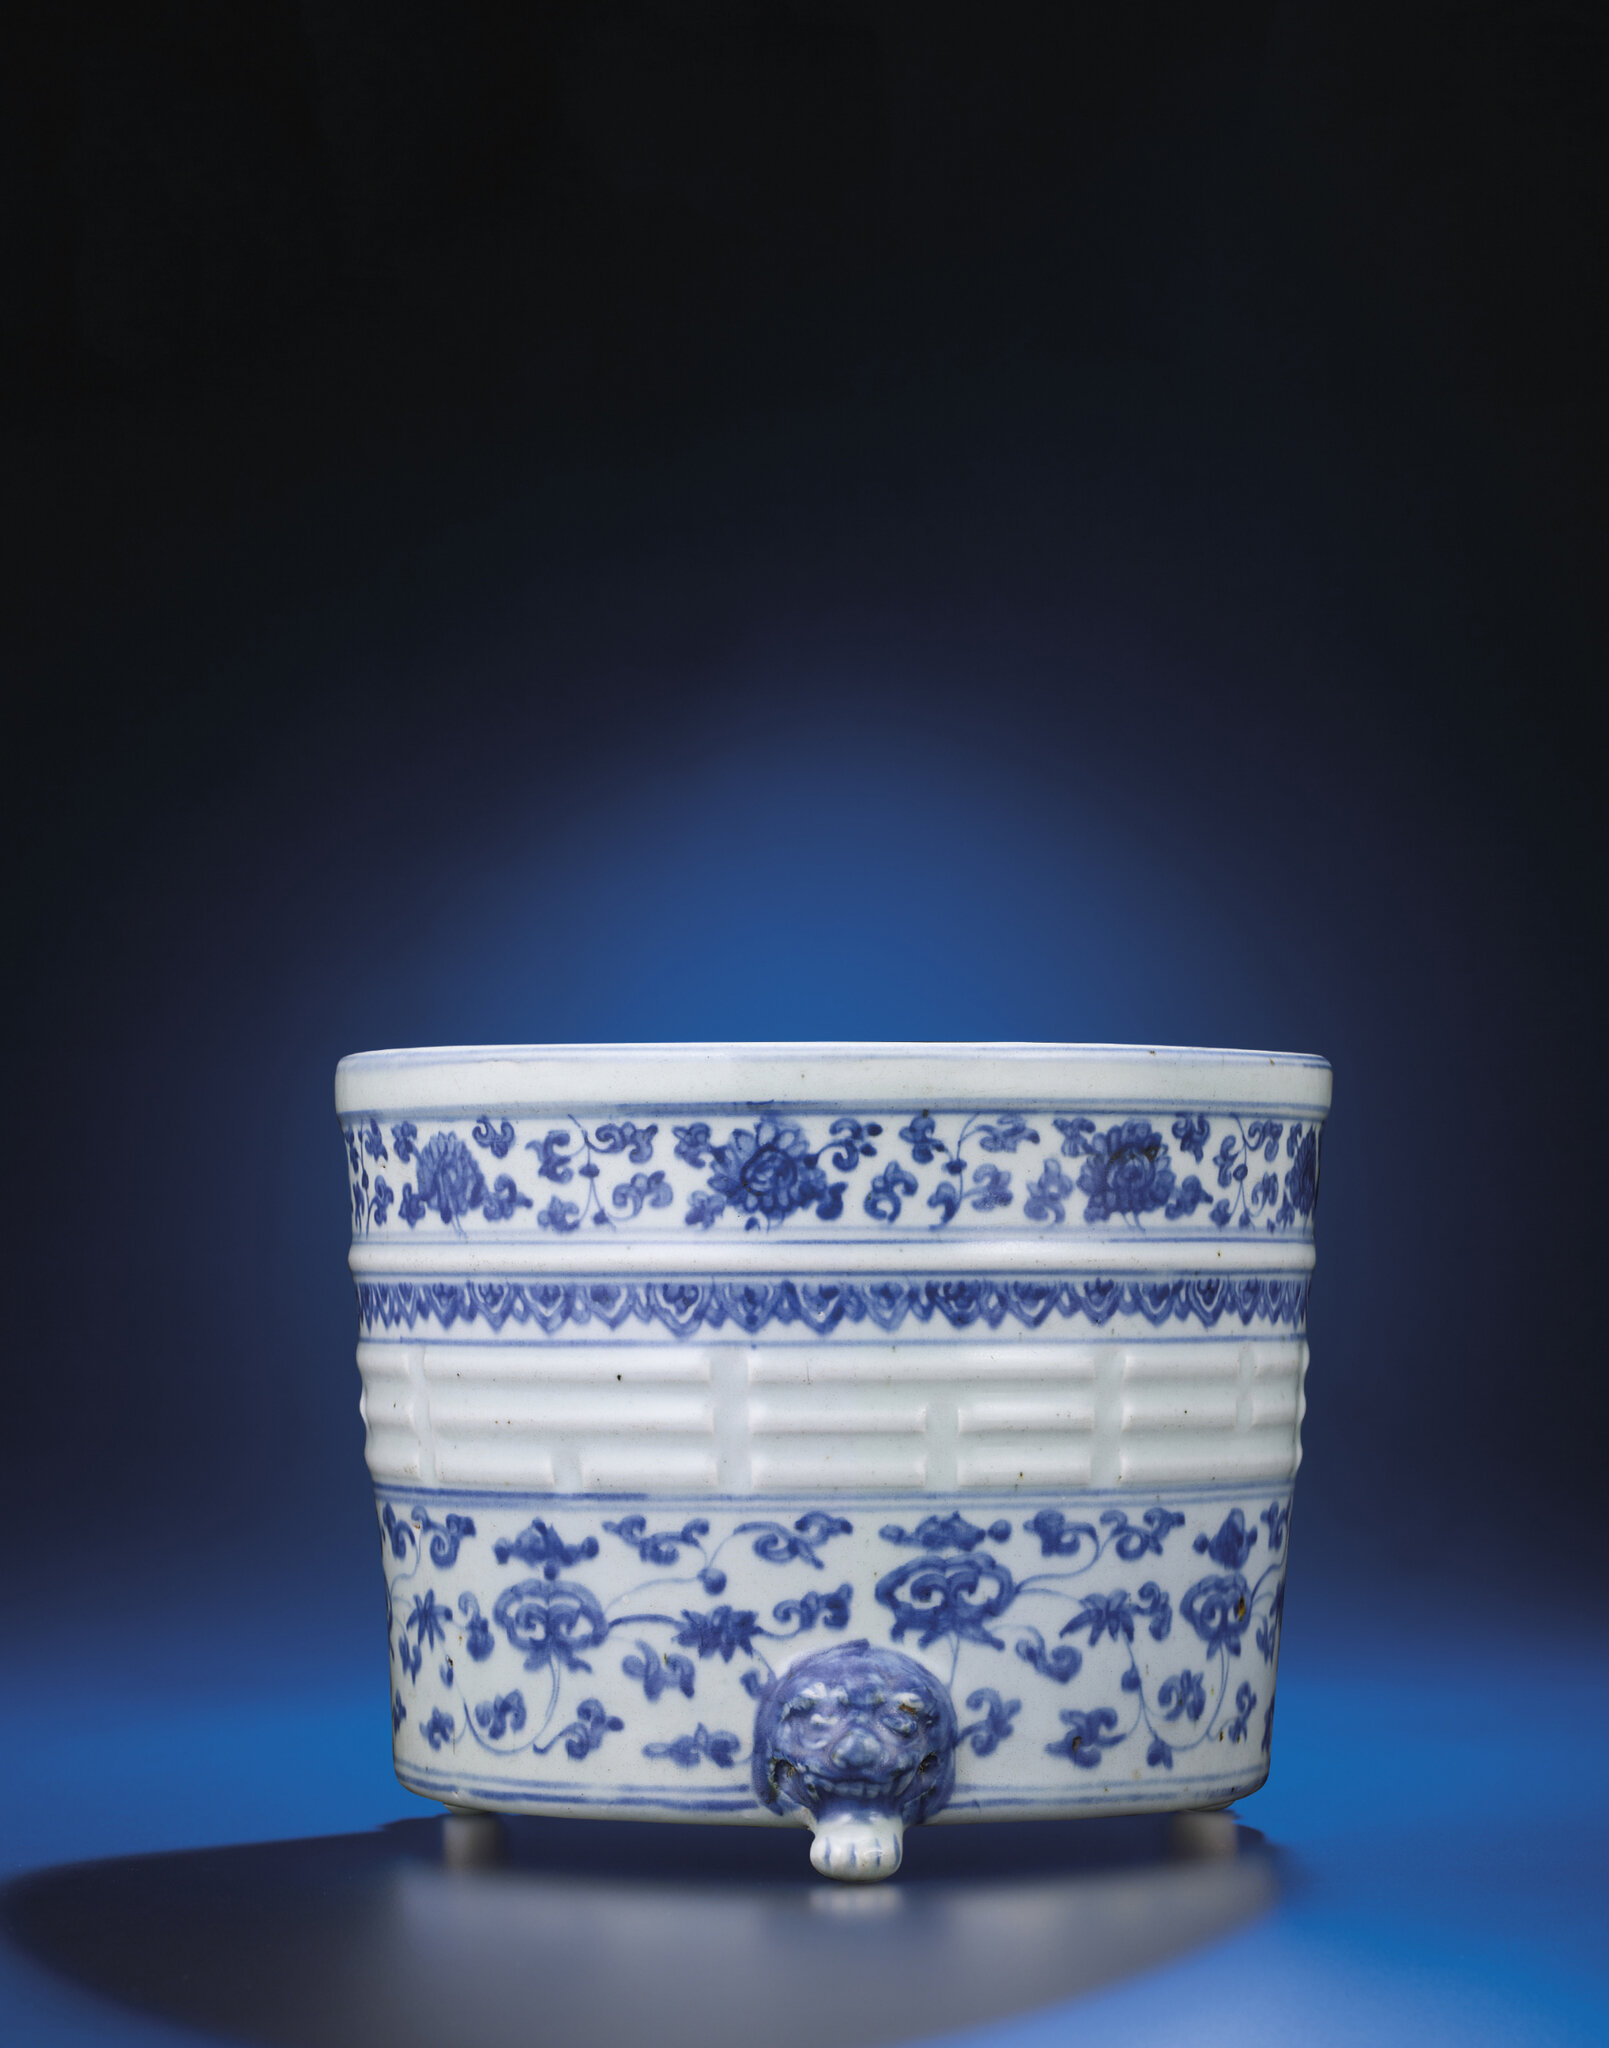 A Ming blue and white tripod censer, Ming dynasty, 16th century